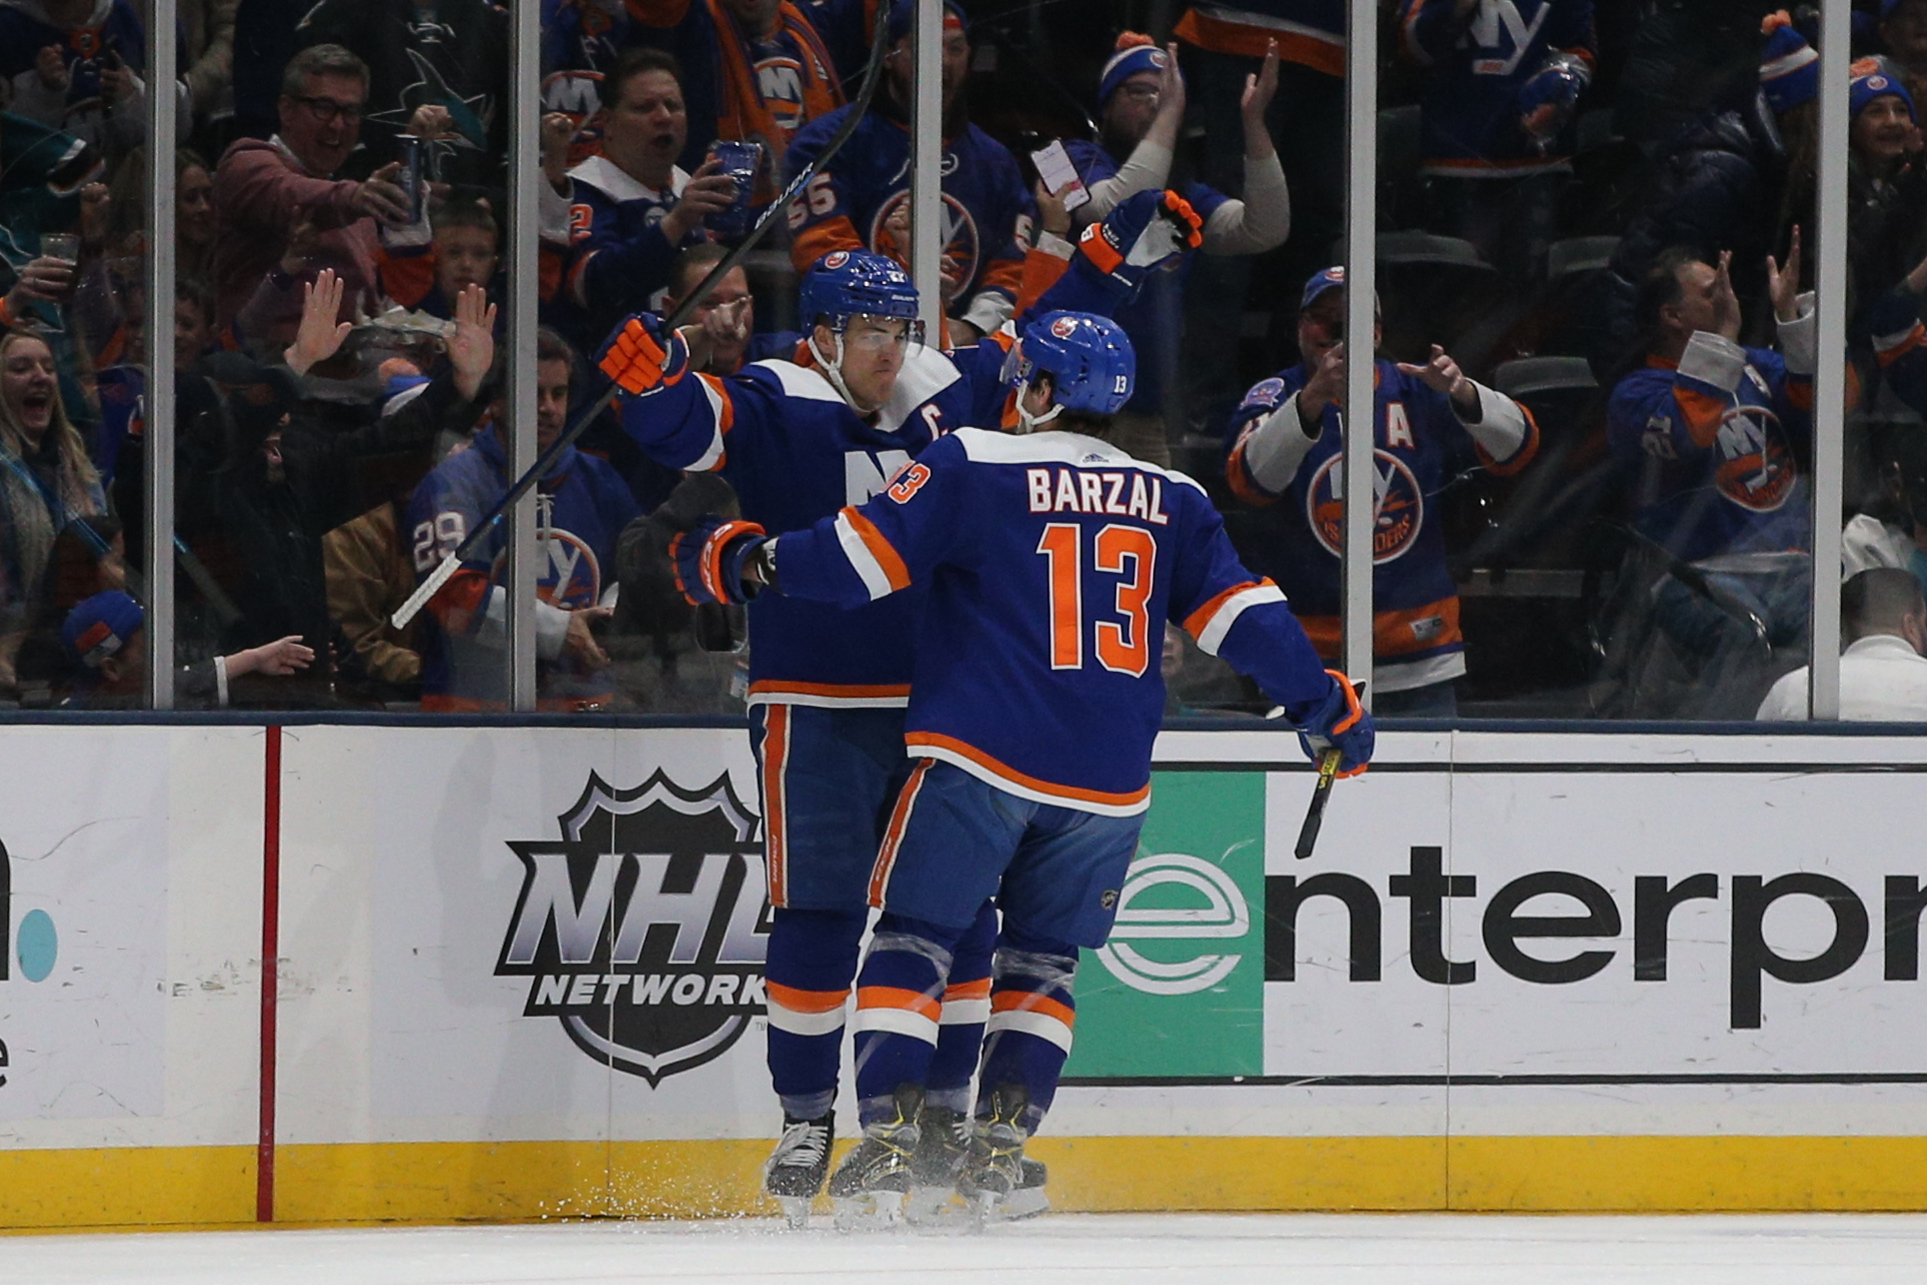 Feb 23, 2020; Uniondale, New York, USA; New York Islanders left wing Anders Lee (27) celebrates his goal against the San Jose Sharks with center Mathew Barzal (13) during the first period at Nassau Veterans Memorial Coliseum. Mandatory Credit: Brad Penner-USA TODAY Sports